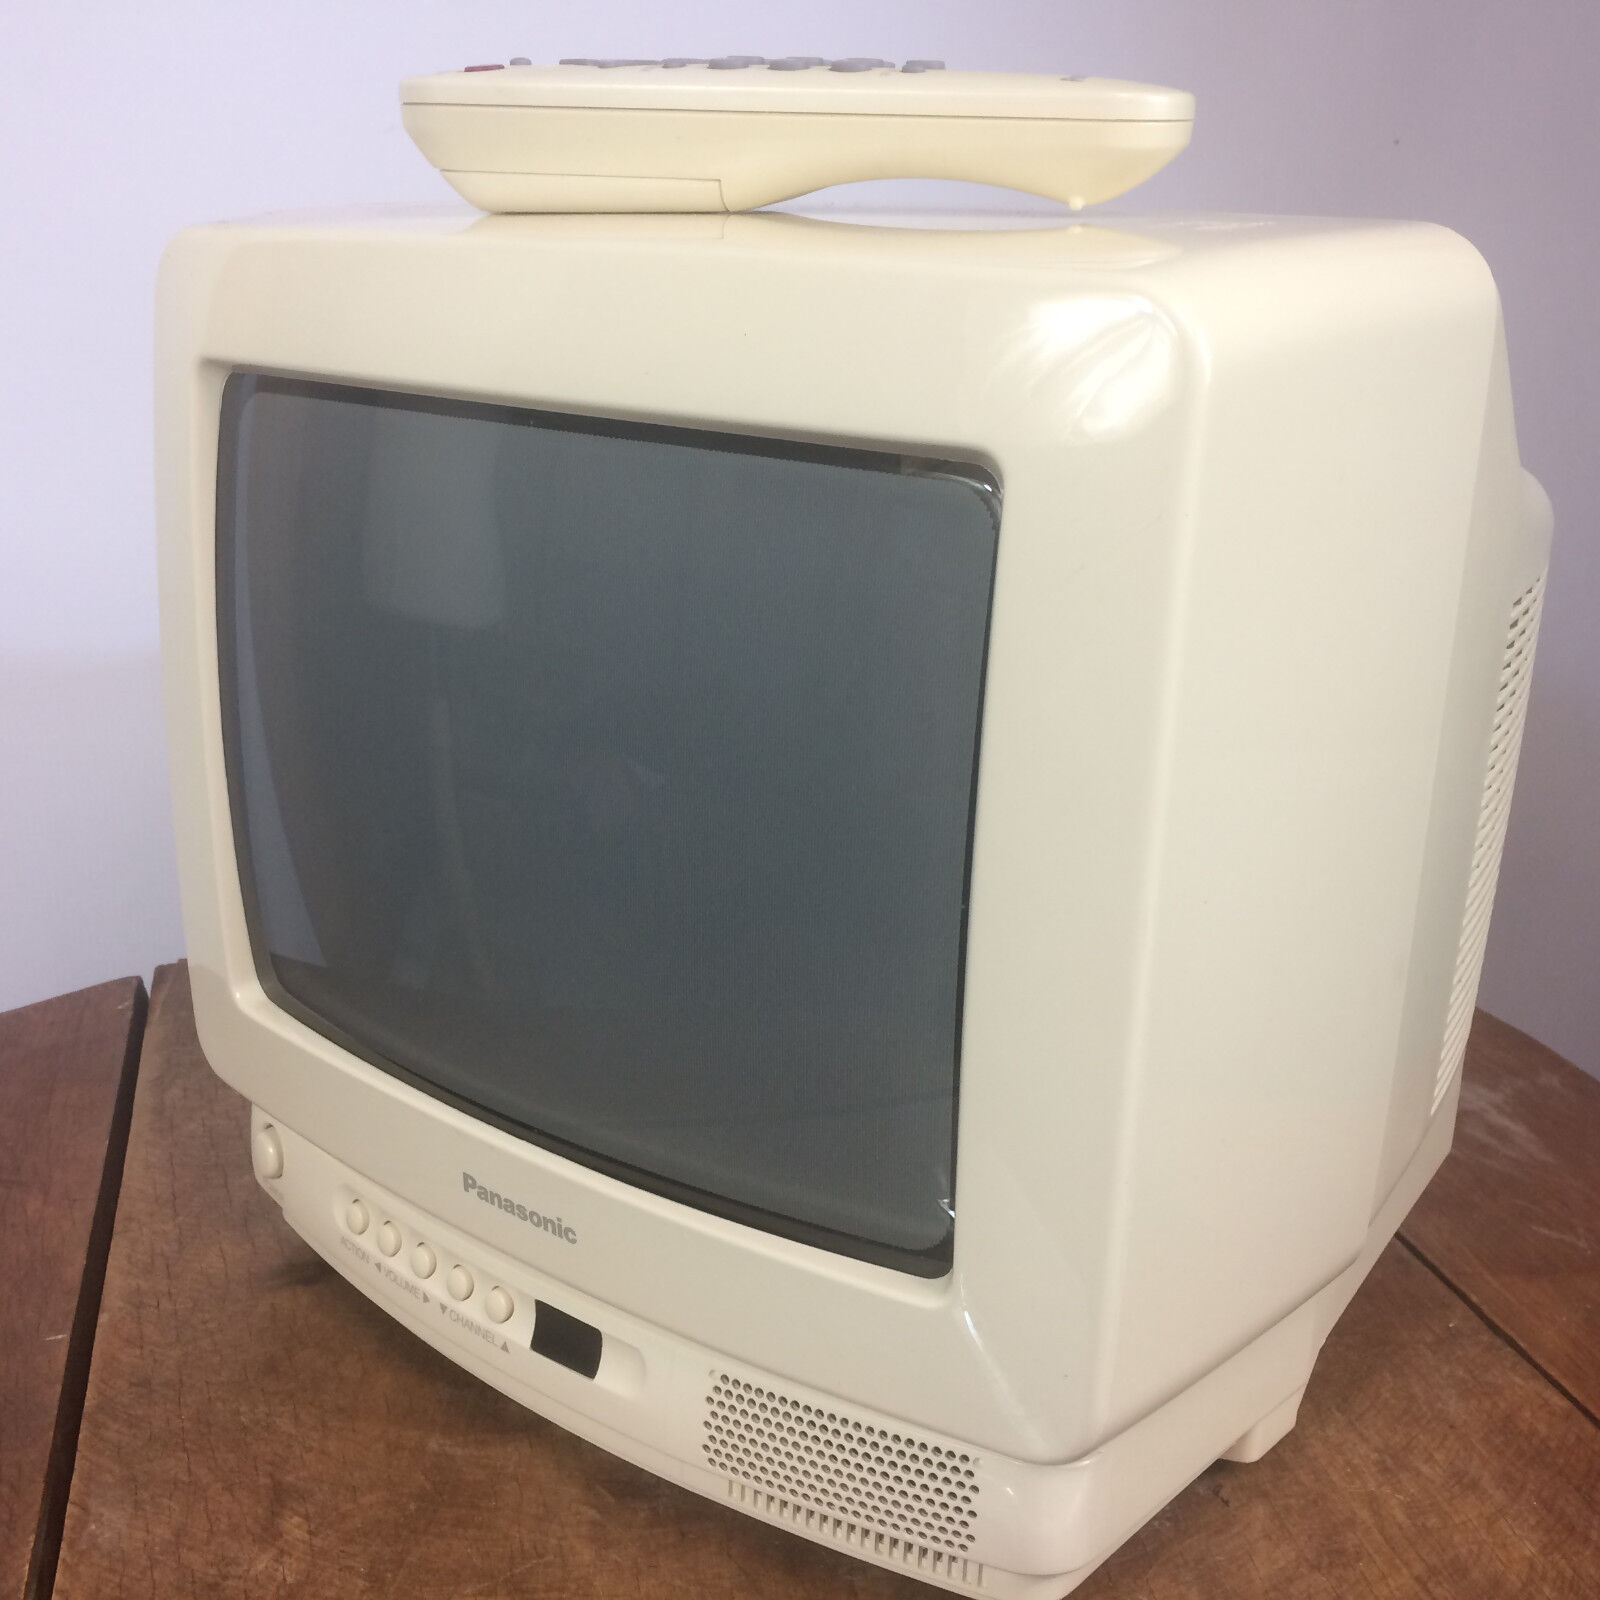 Vintage 80s 90s CRT White Panasonic TV Television w/ Remote for Video Game  Small